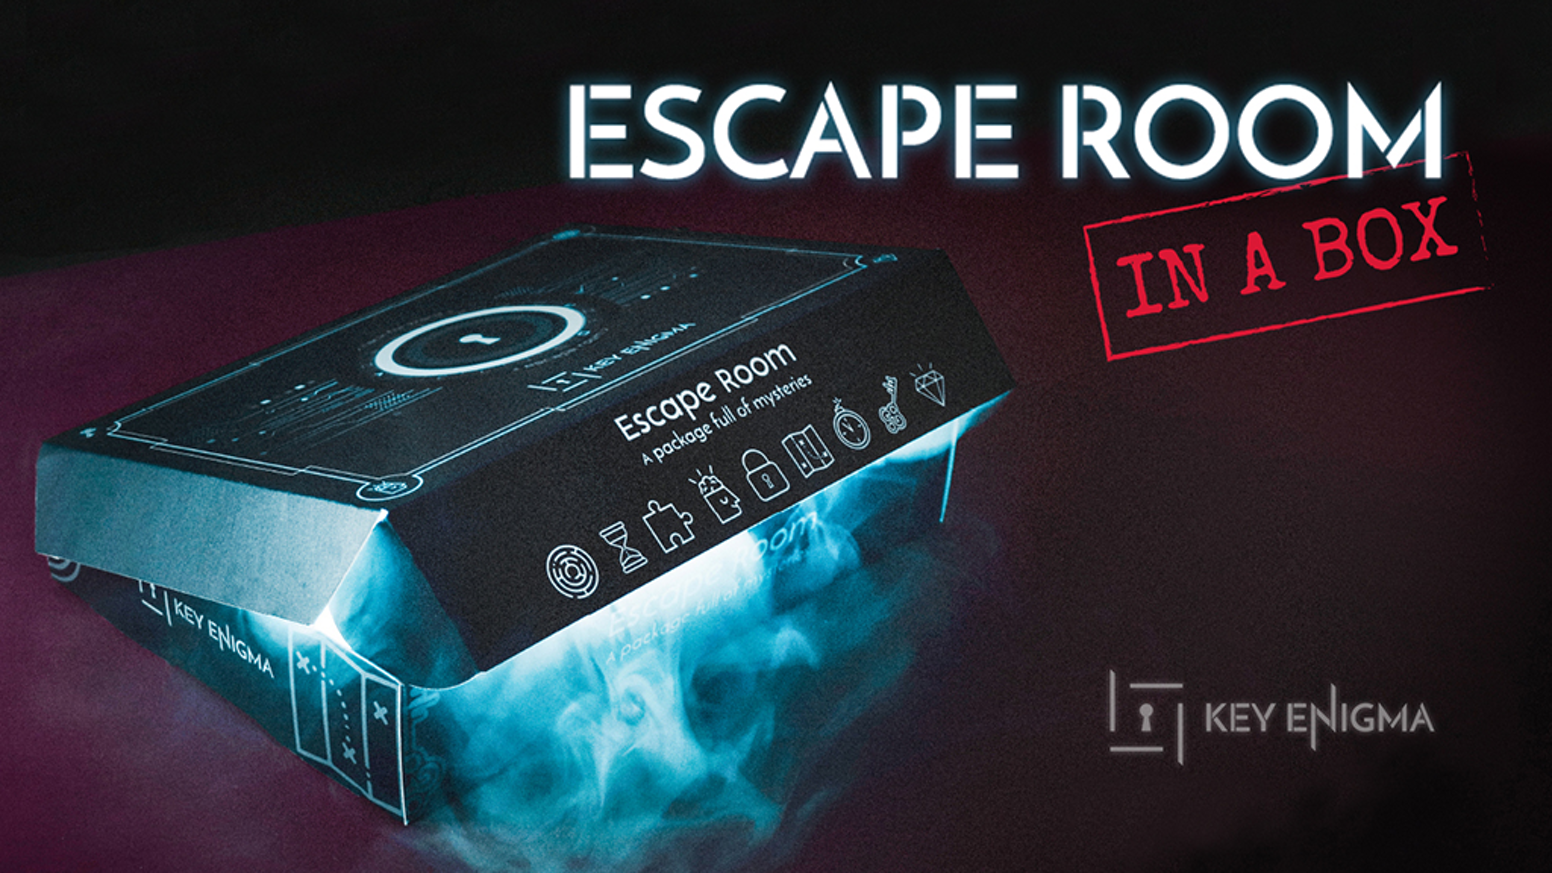 Escape Room in a Box that mixes puzzles, narrative and technology to immerse you in a challenging experience.